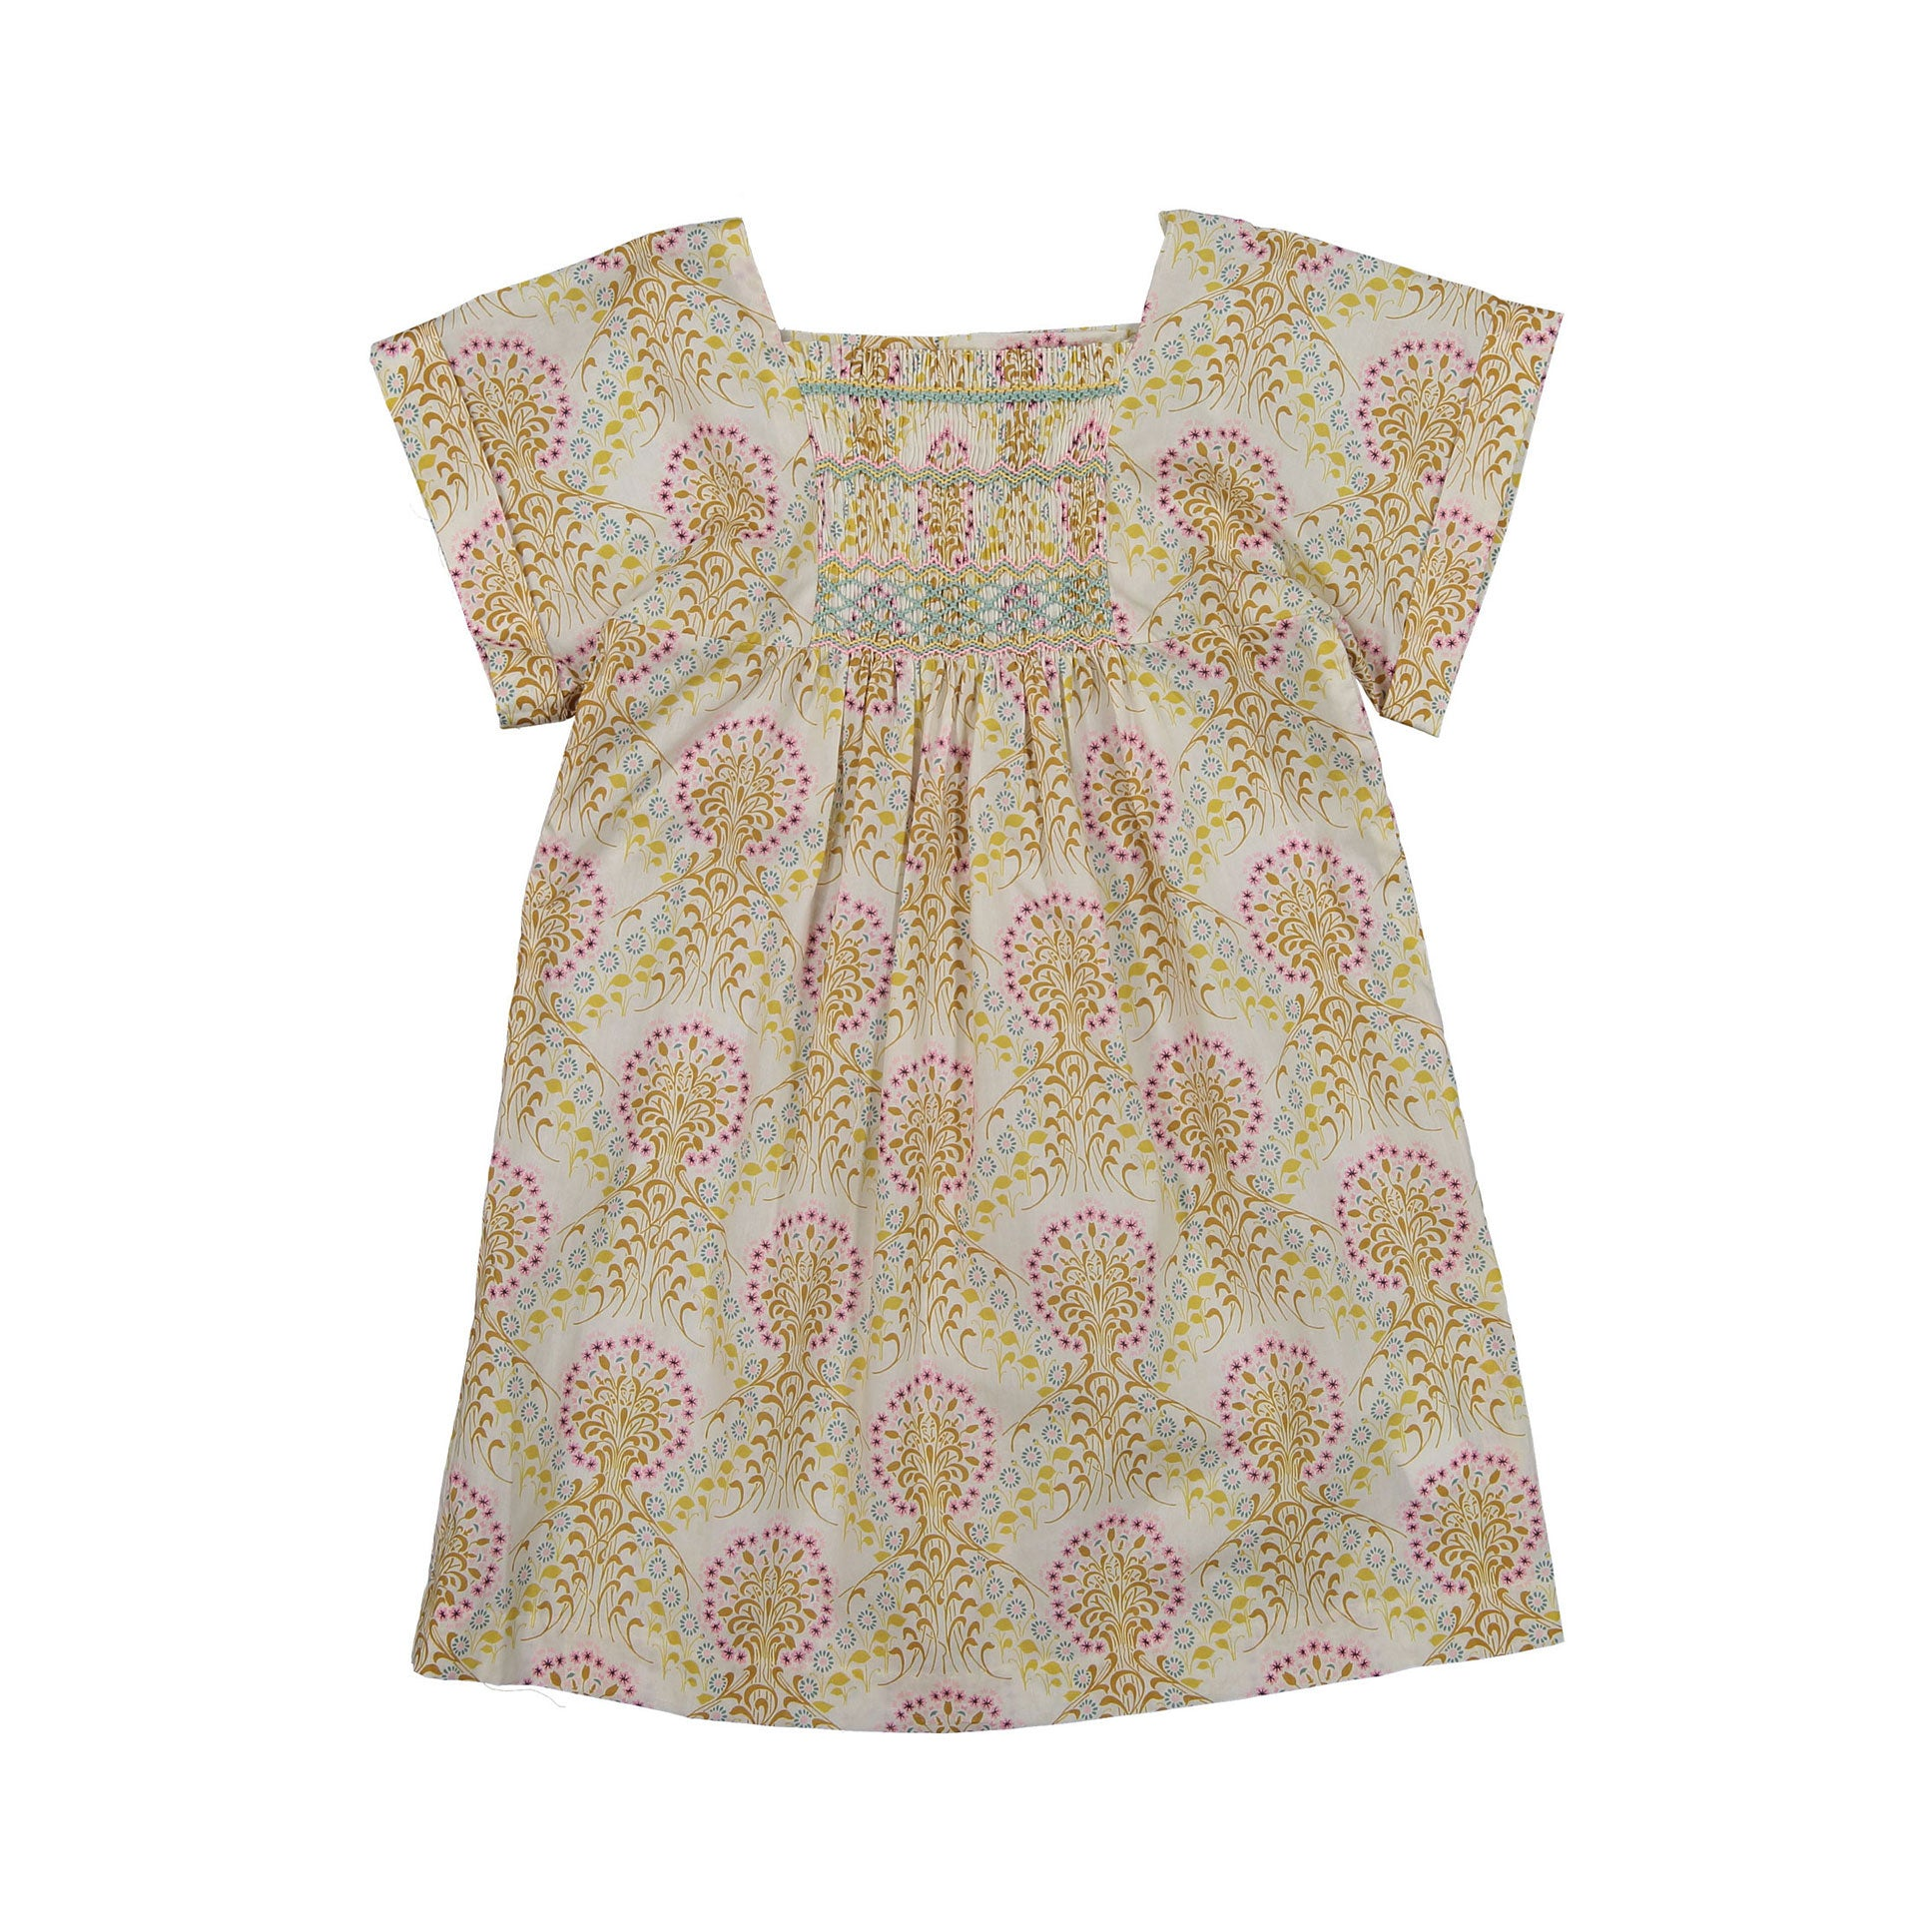 Bonpoint Ecru Floral Smocked Dress